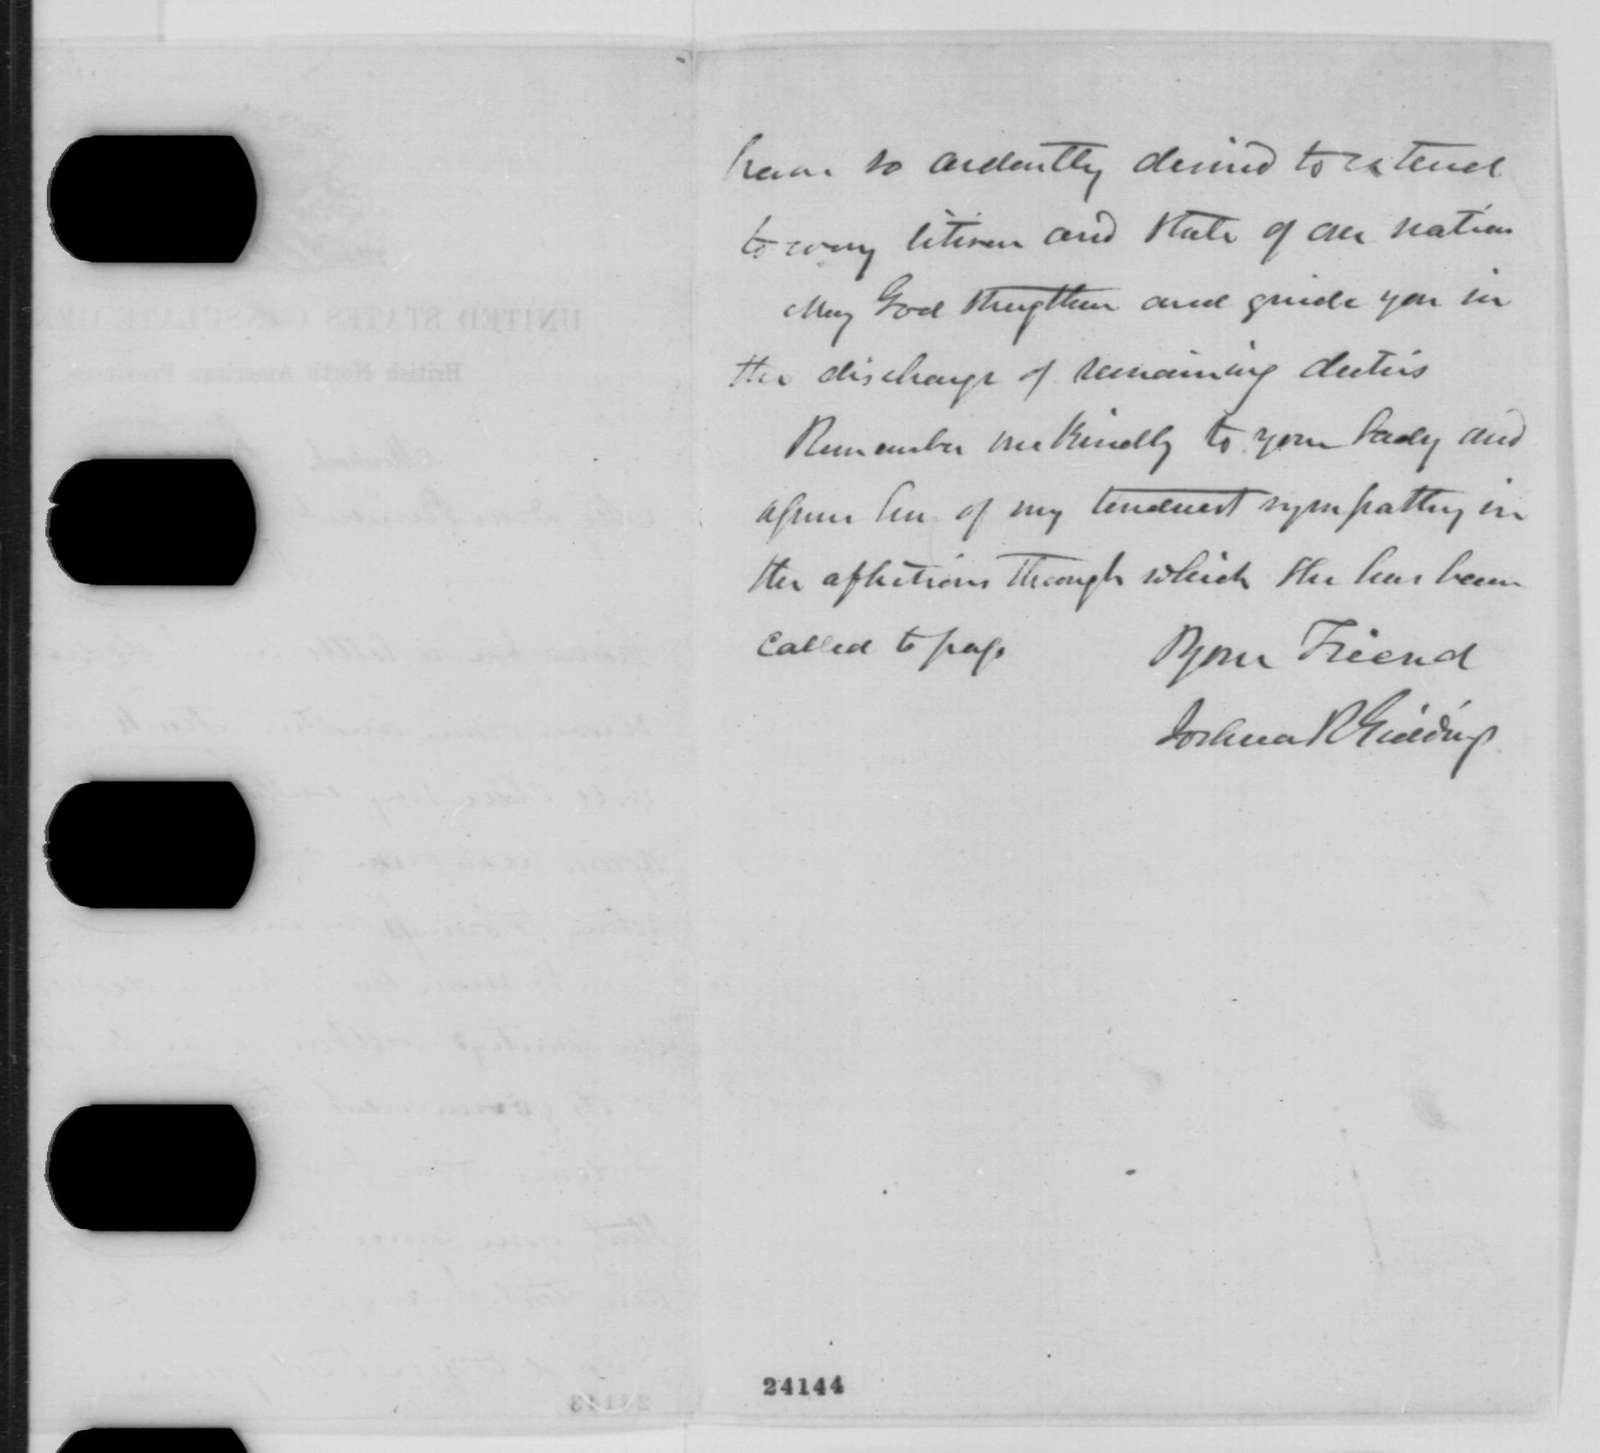 Joshua R. Giddings to Abraham Lincoln, Monday, June 15, 1863  (Supports Lincoln's policy)